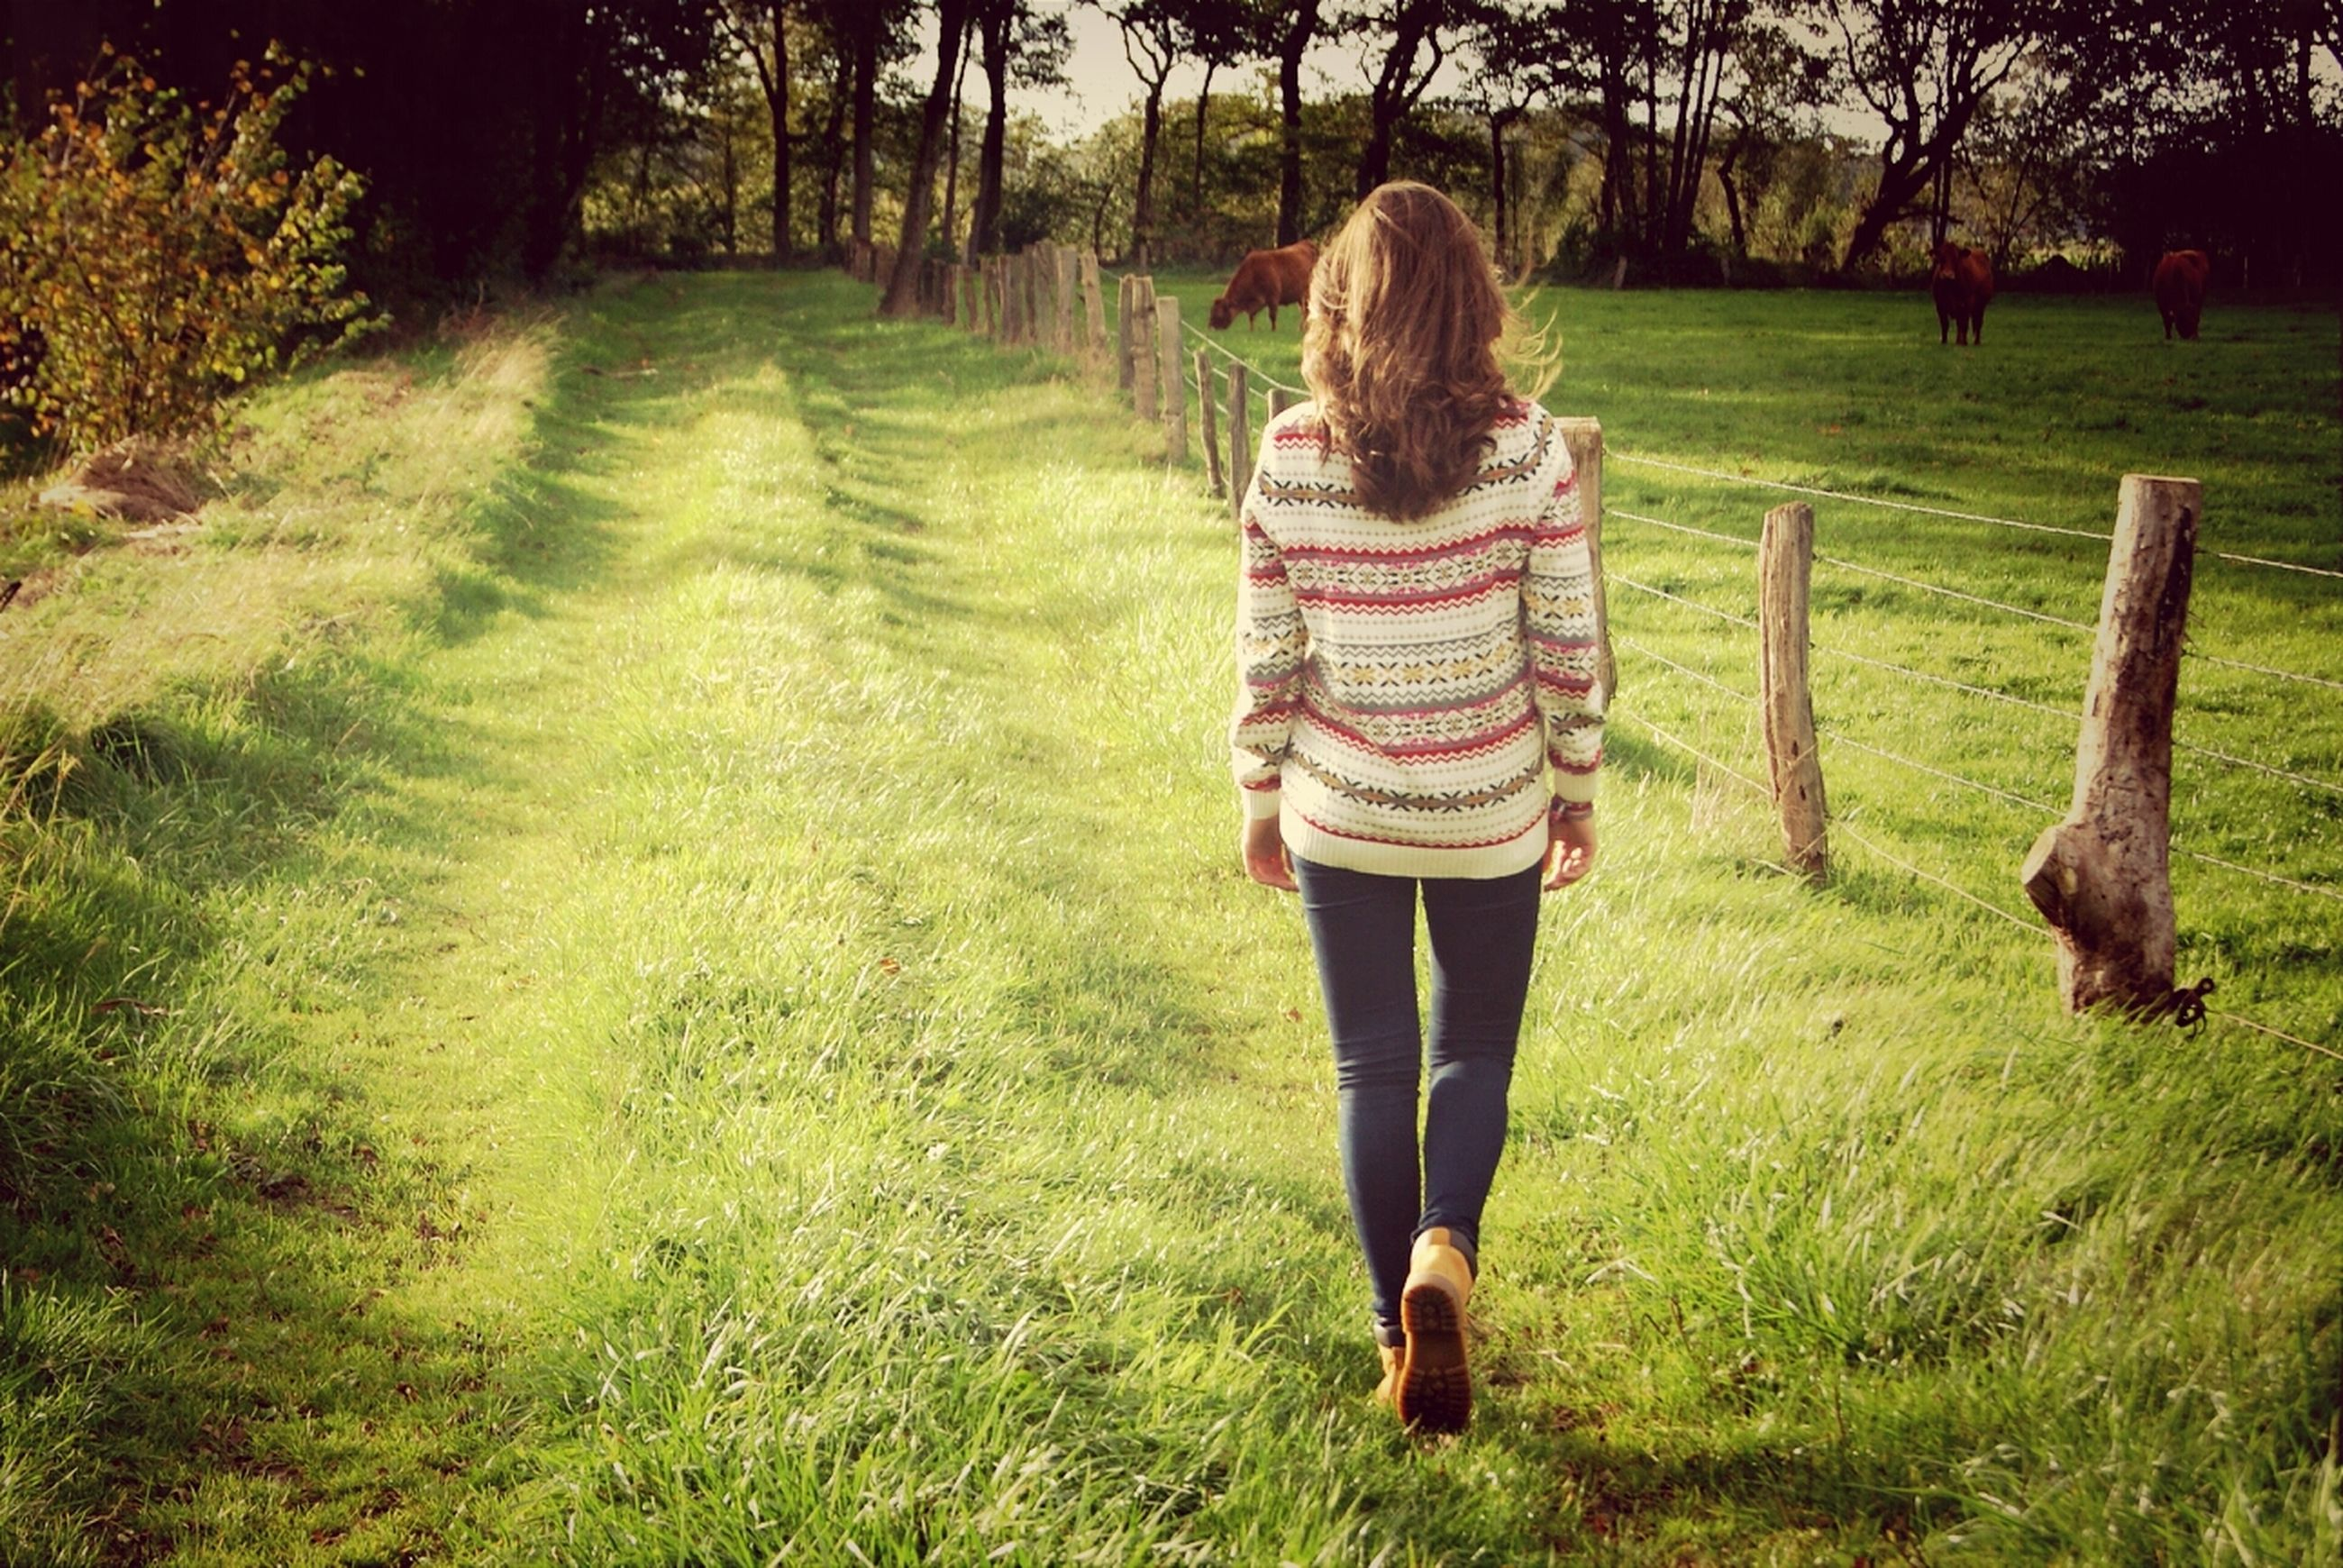 grass, green color, tree, lifestyles, field, full length, rear view, standing, walking, grassy, casual clothing, growth, leisure activity, person, nature, park - man made space, day, tranquility